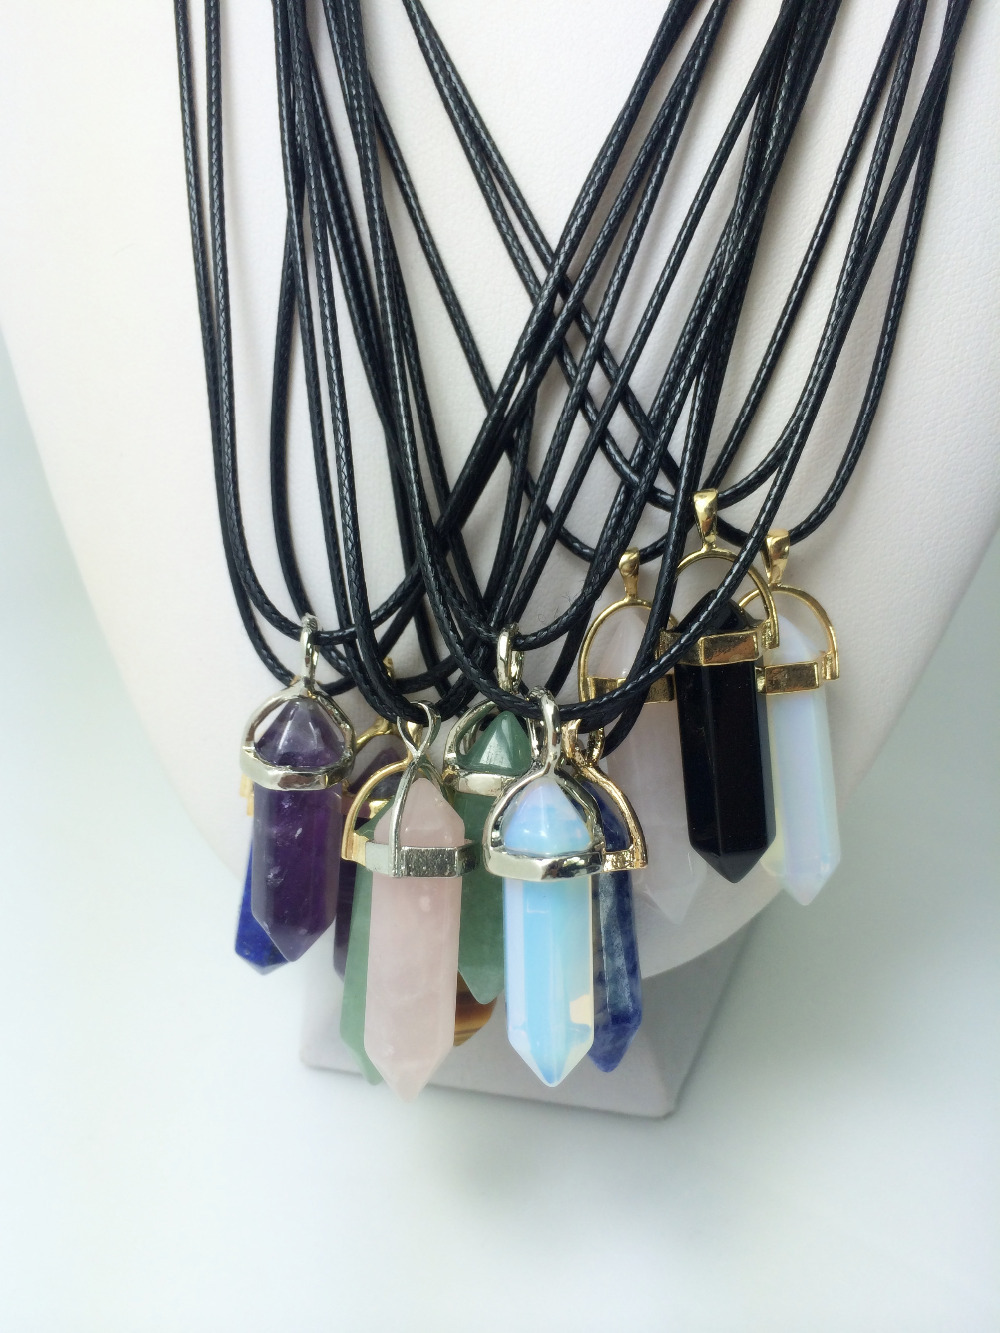 2015 NEW Women Casual Natural Stone Onyx Hexagonal Point Black Leather Cord Rope Choker Charm Pendant Healing Necklace Men - fengerone store